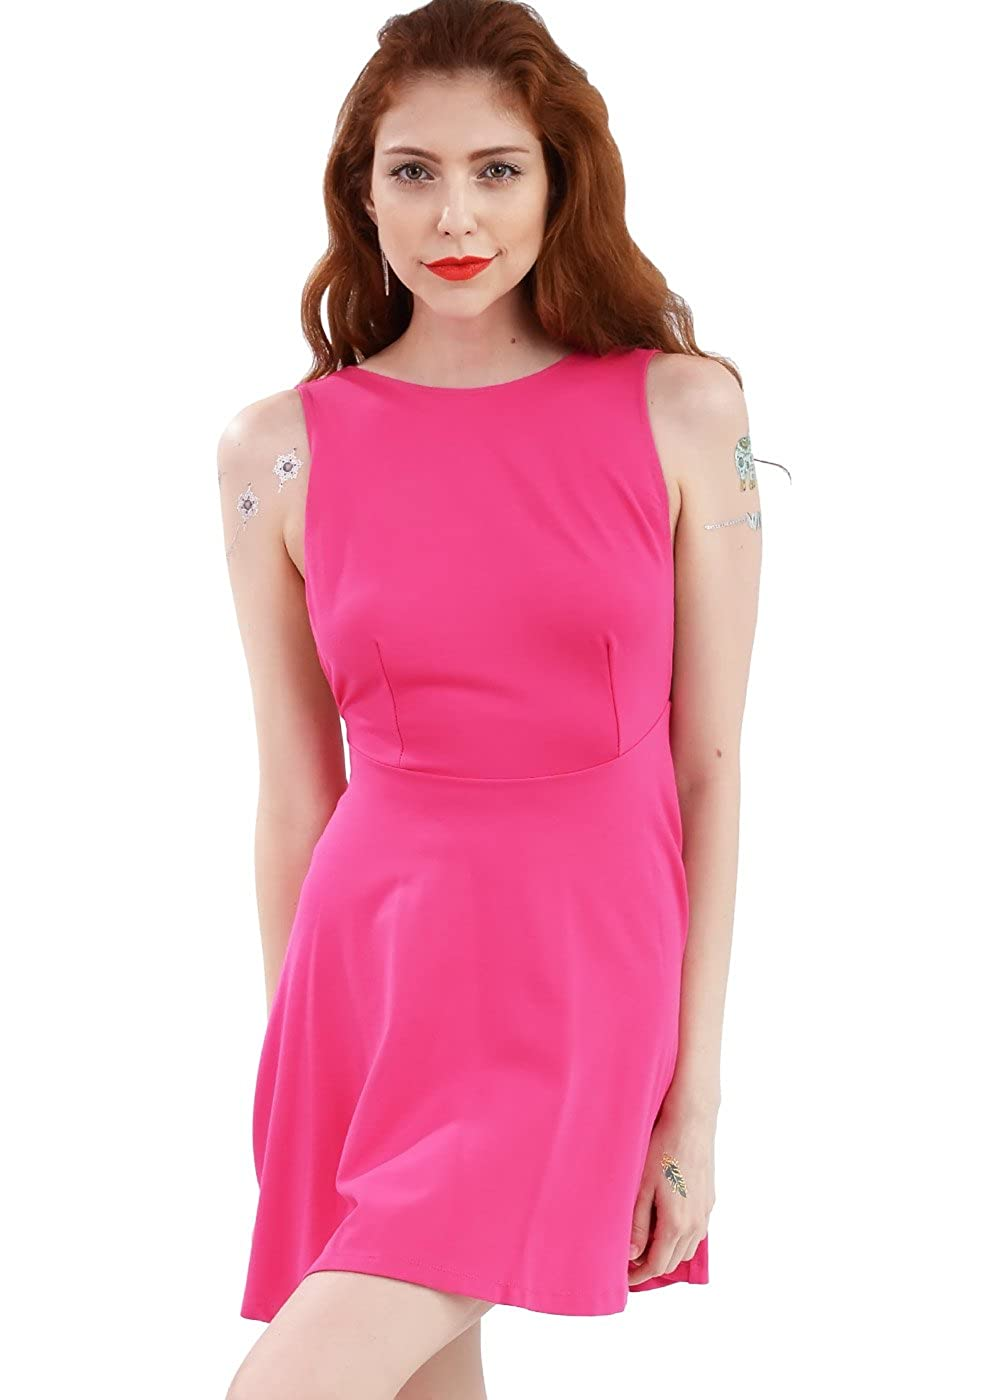 7c3981f224 Amazon.com  Wink Gal Women A line Backless Round Neck Sleeveless Cocktail  Mini Casual Dress  Clothing